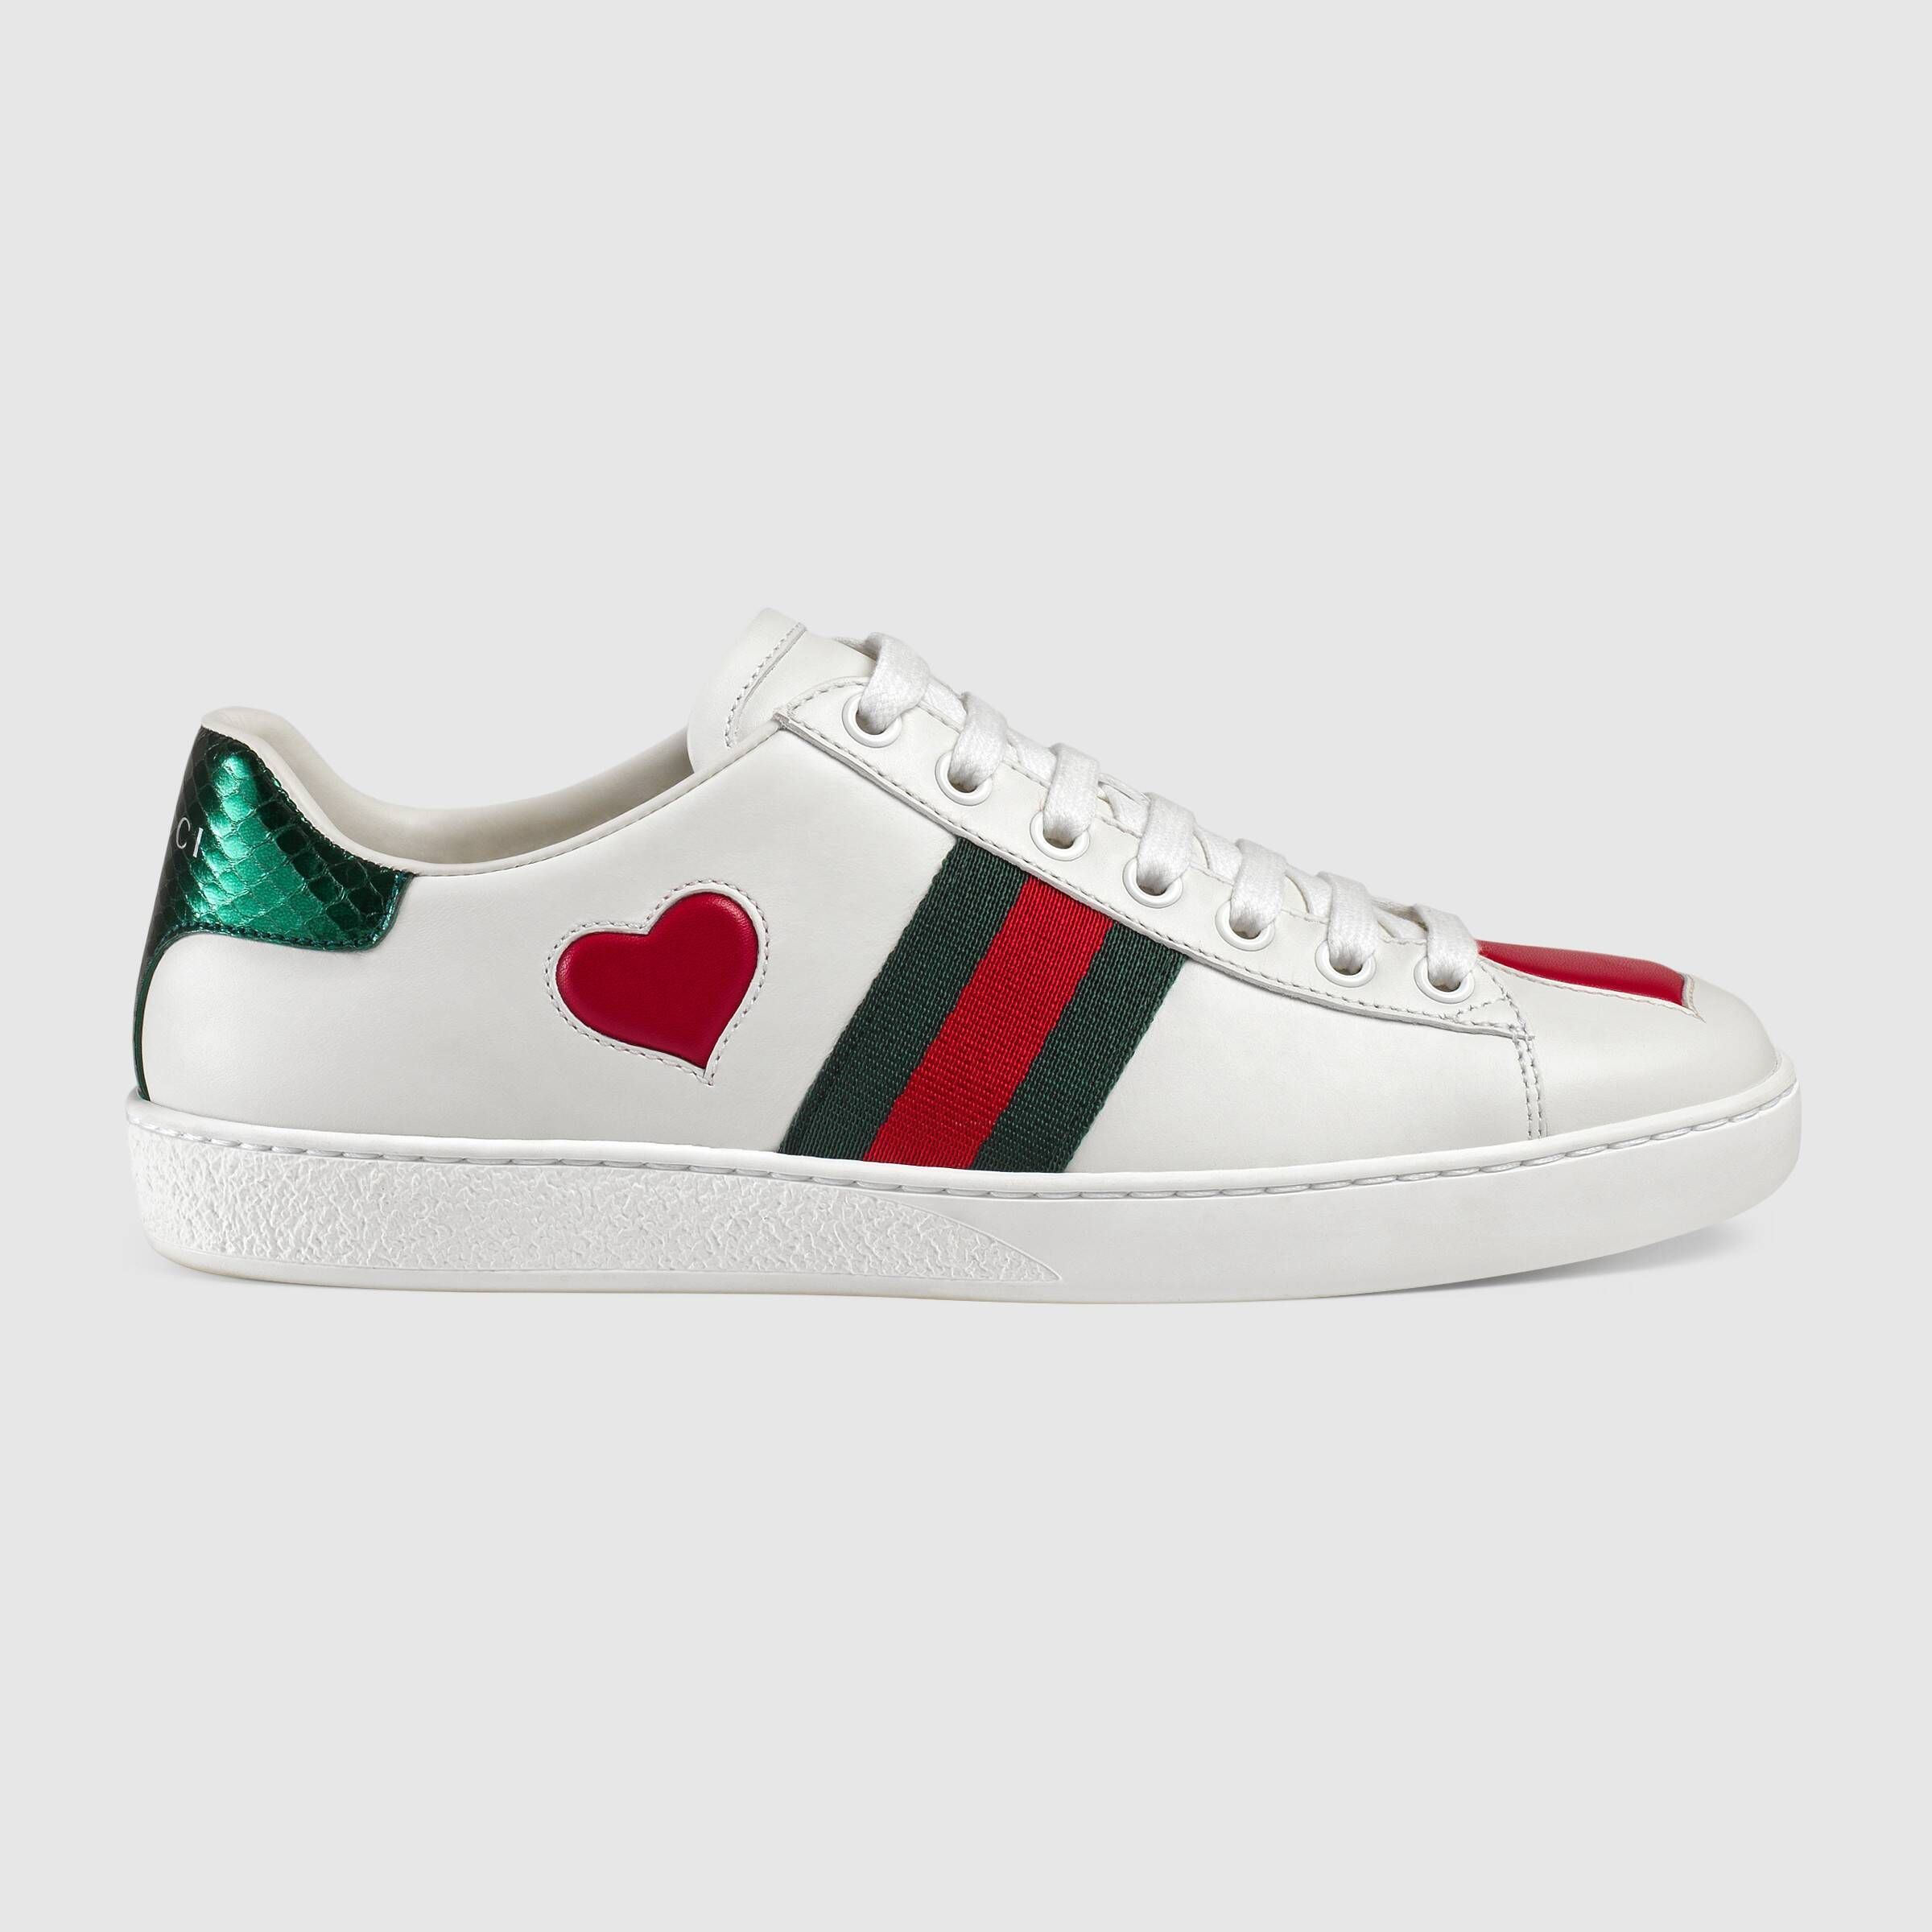 Gucci Ace Embroidered Sneaker Hearts 435638 A38m0 9074 Sneakers Gucci Sneakers Top Sneakers